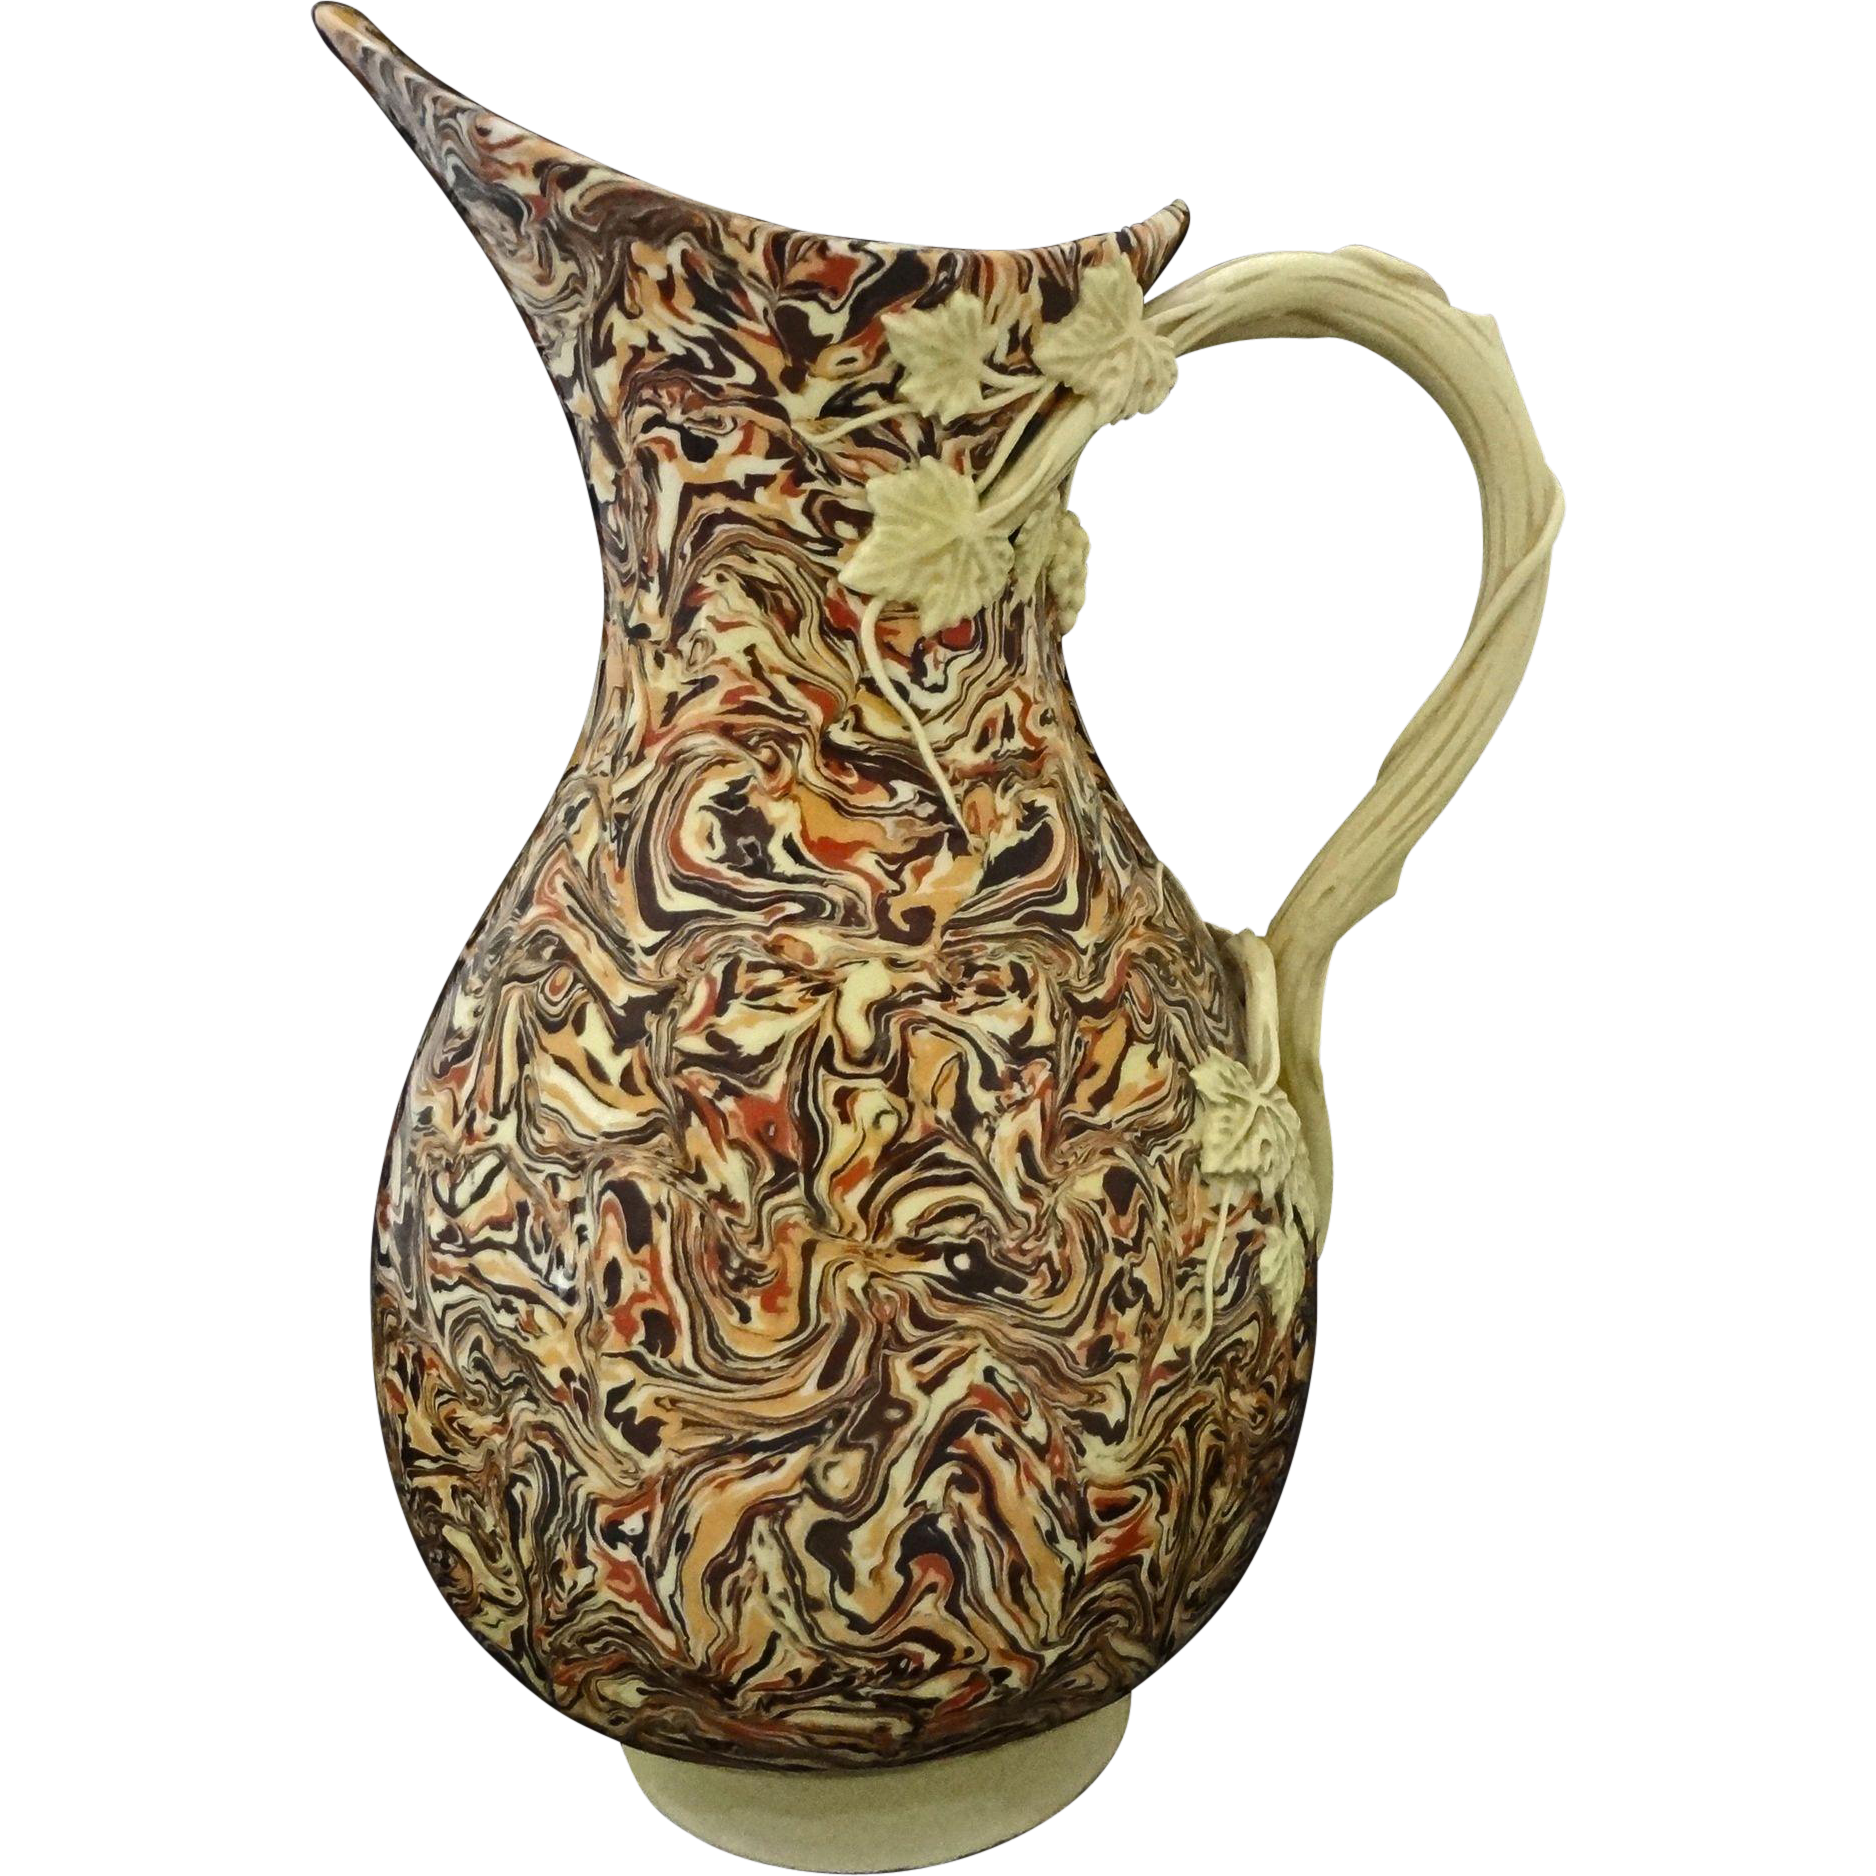 French Faience Marbleized Pitcher Provence Jean Faucon Apt - 20th Century, France